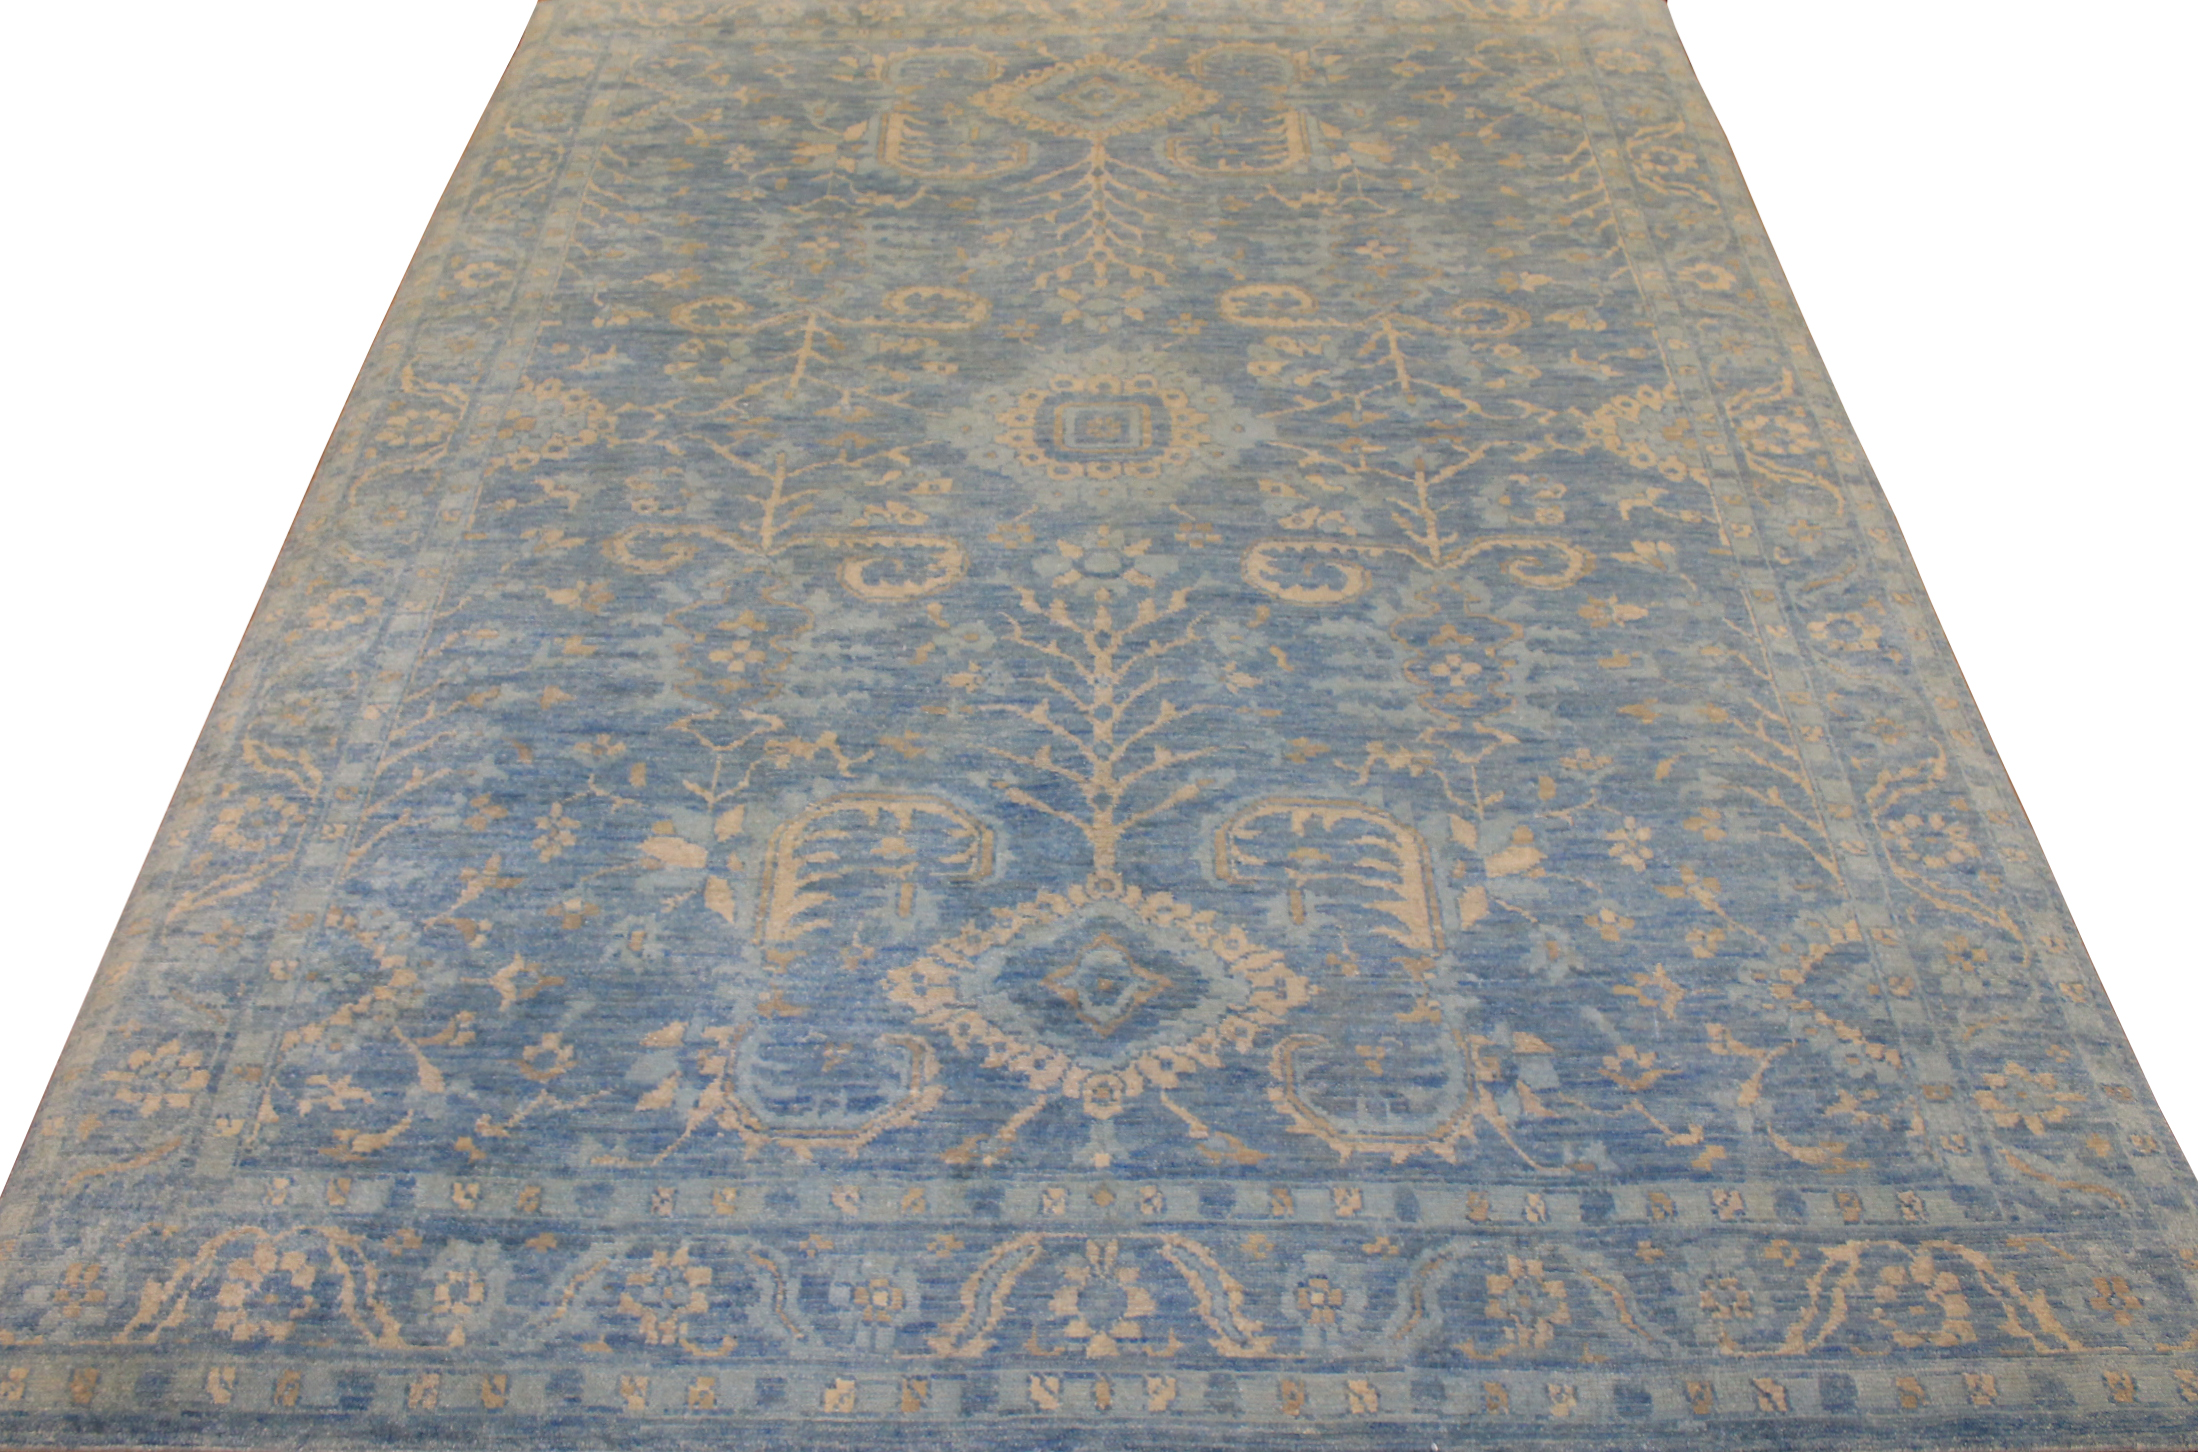 9x12 Oushak Hand Knotted Wool Area Rug - MR18028